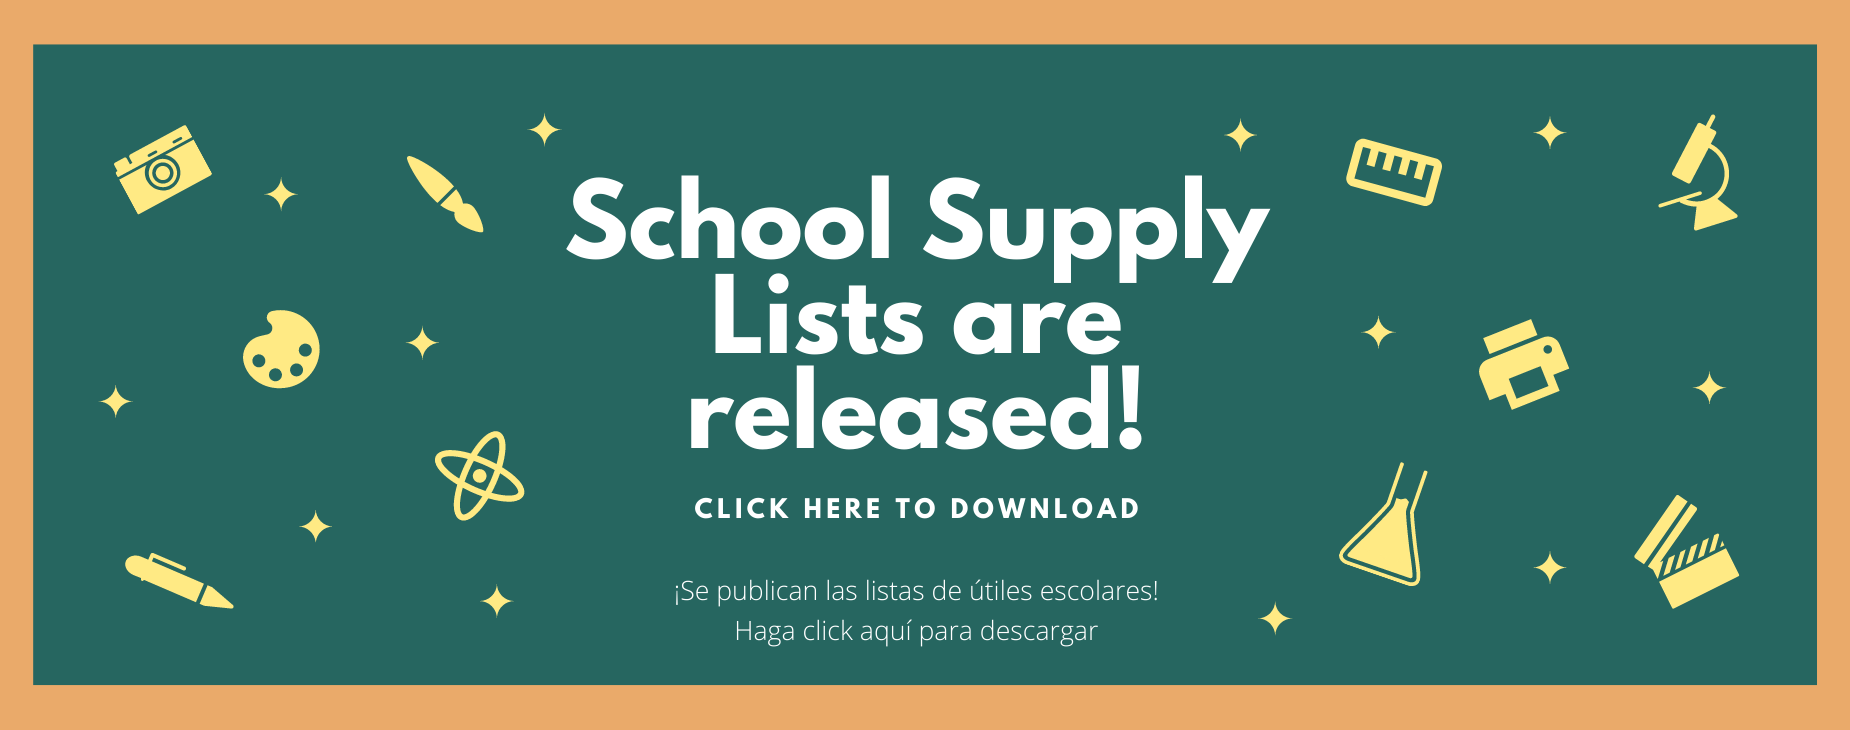 School Supply Lists are released!, Click here to download | ¡Se publican las listas de útiles escolares!, Haga click aquí para descargar